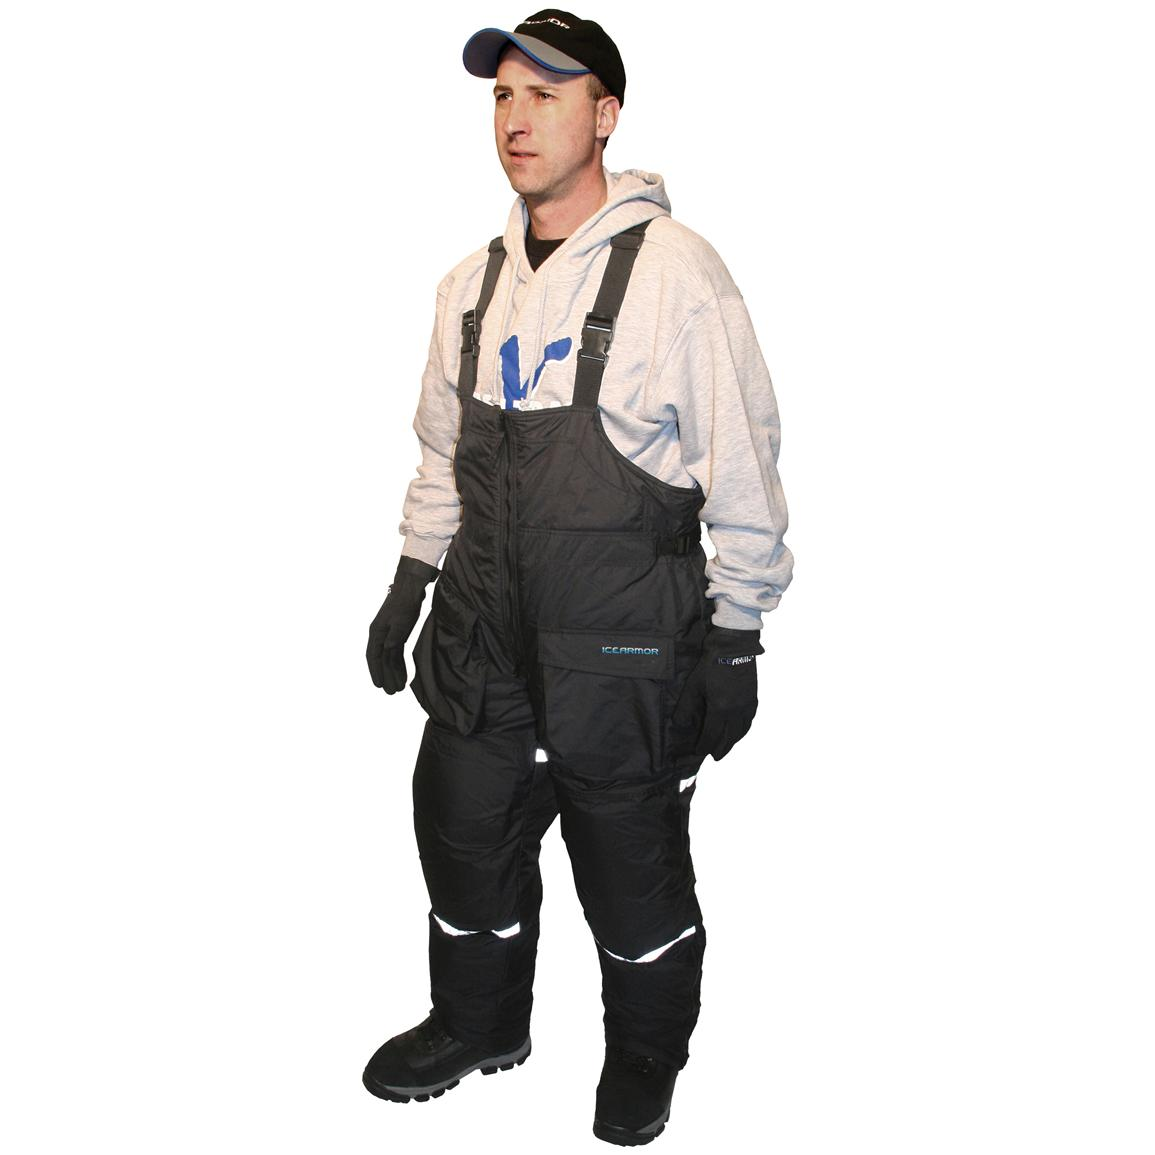 Clam ice armor insulated bibs 173173 ice fishing for Ice fishing clothing